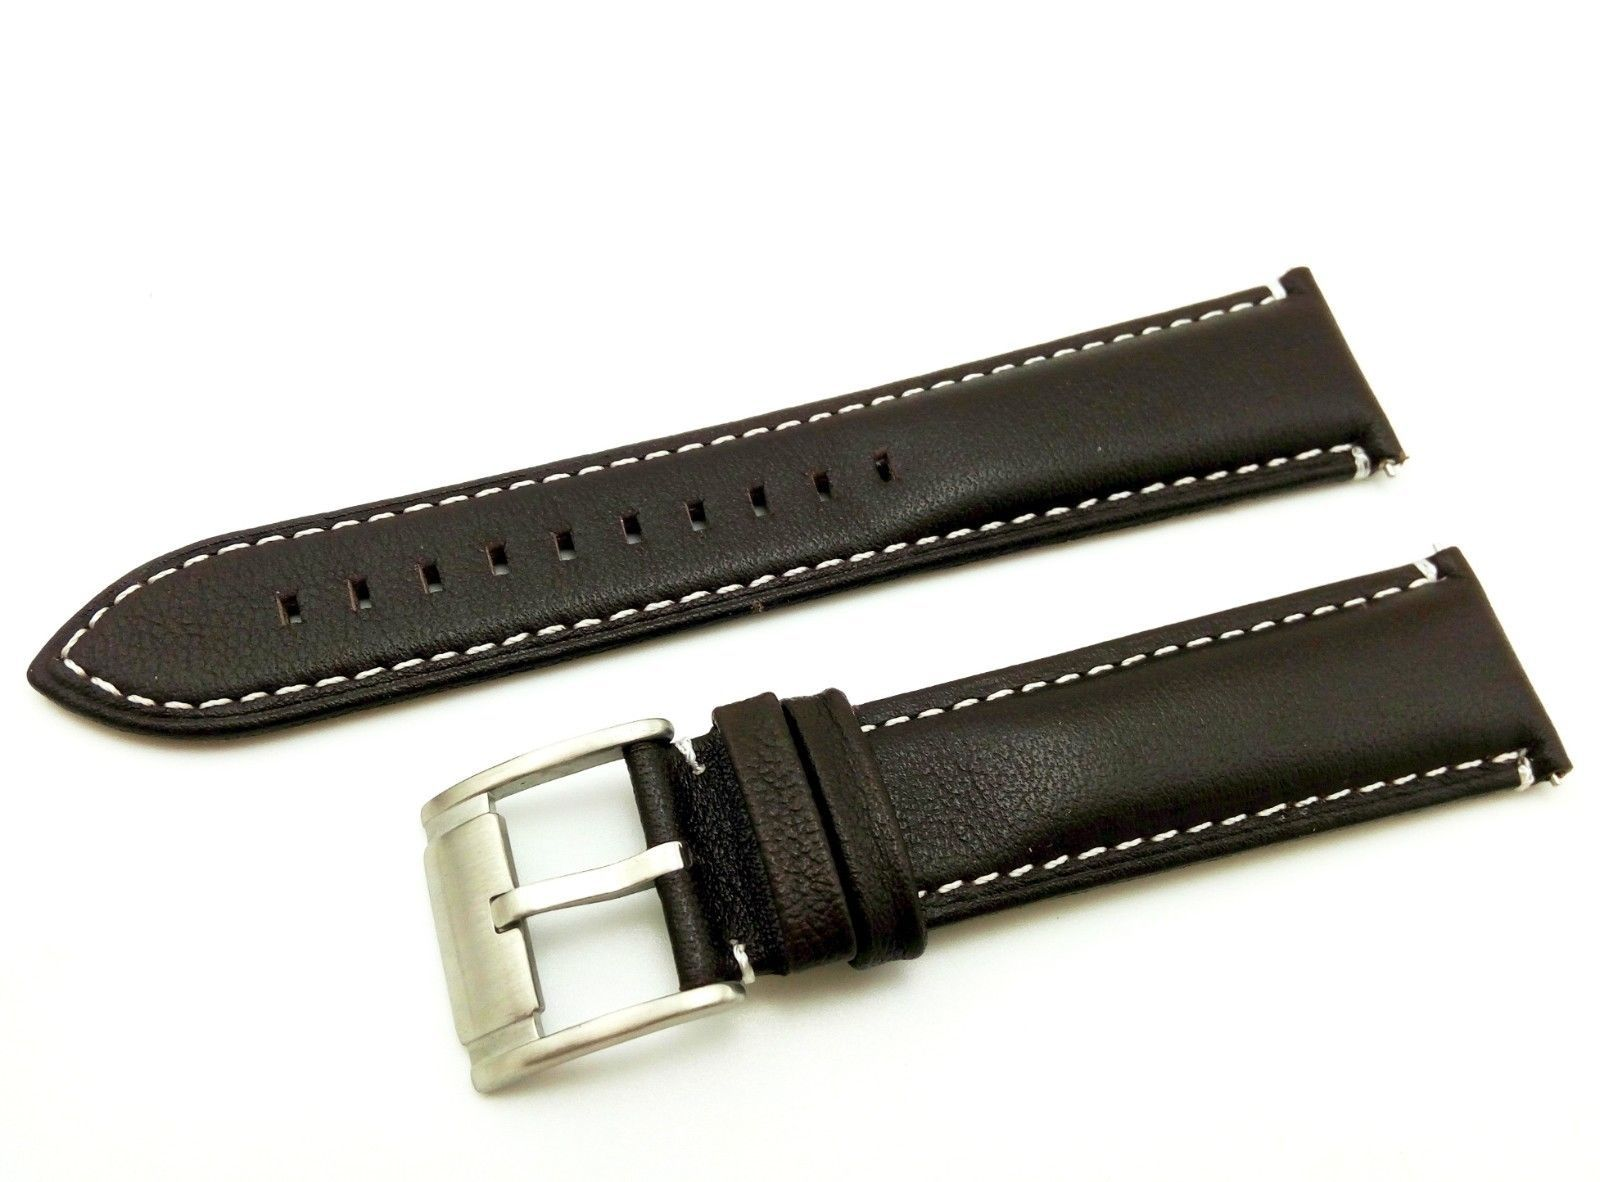 Dark Brown/W. #2 Strap/Band for FOSSIL Watch Genuine Leather Silver/Buckle 22mm - $20.00